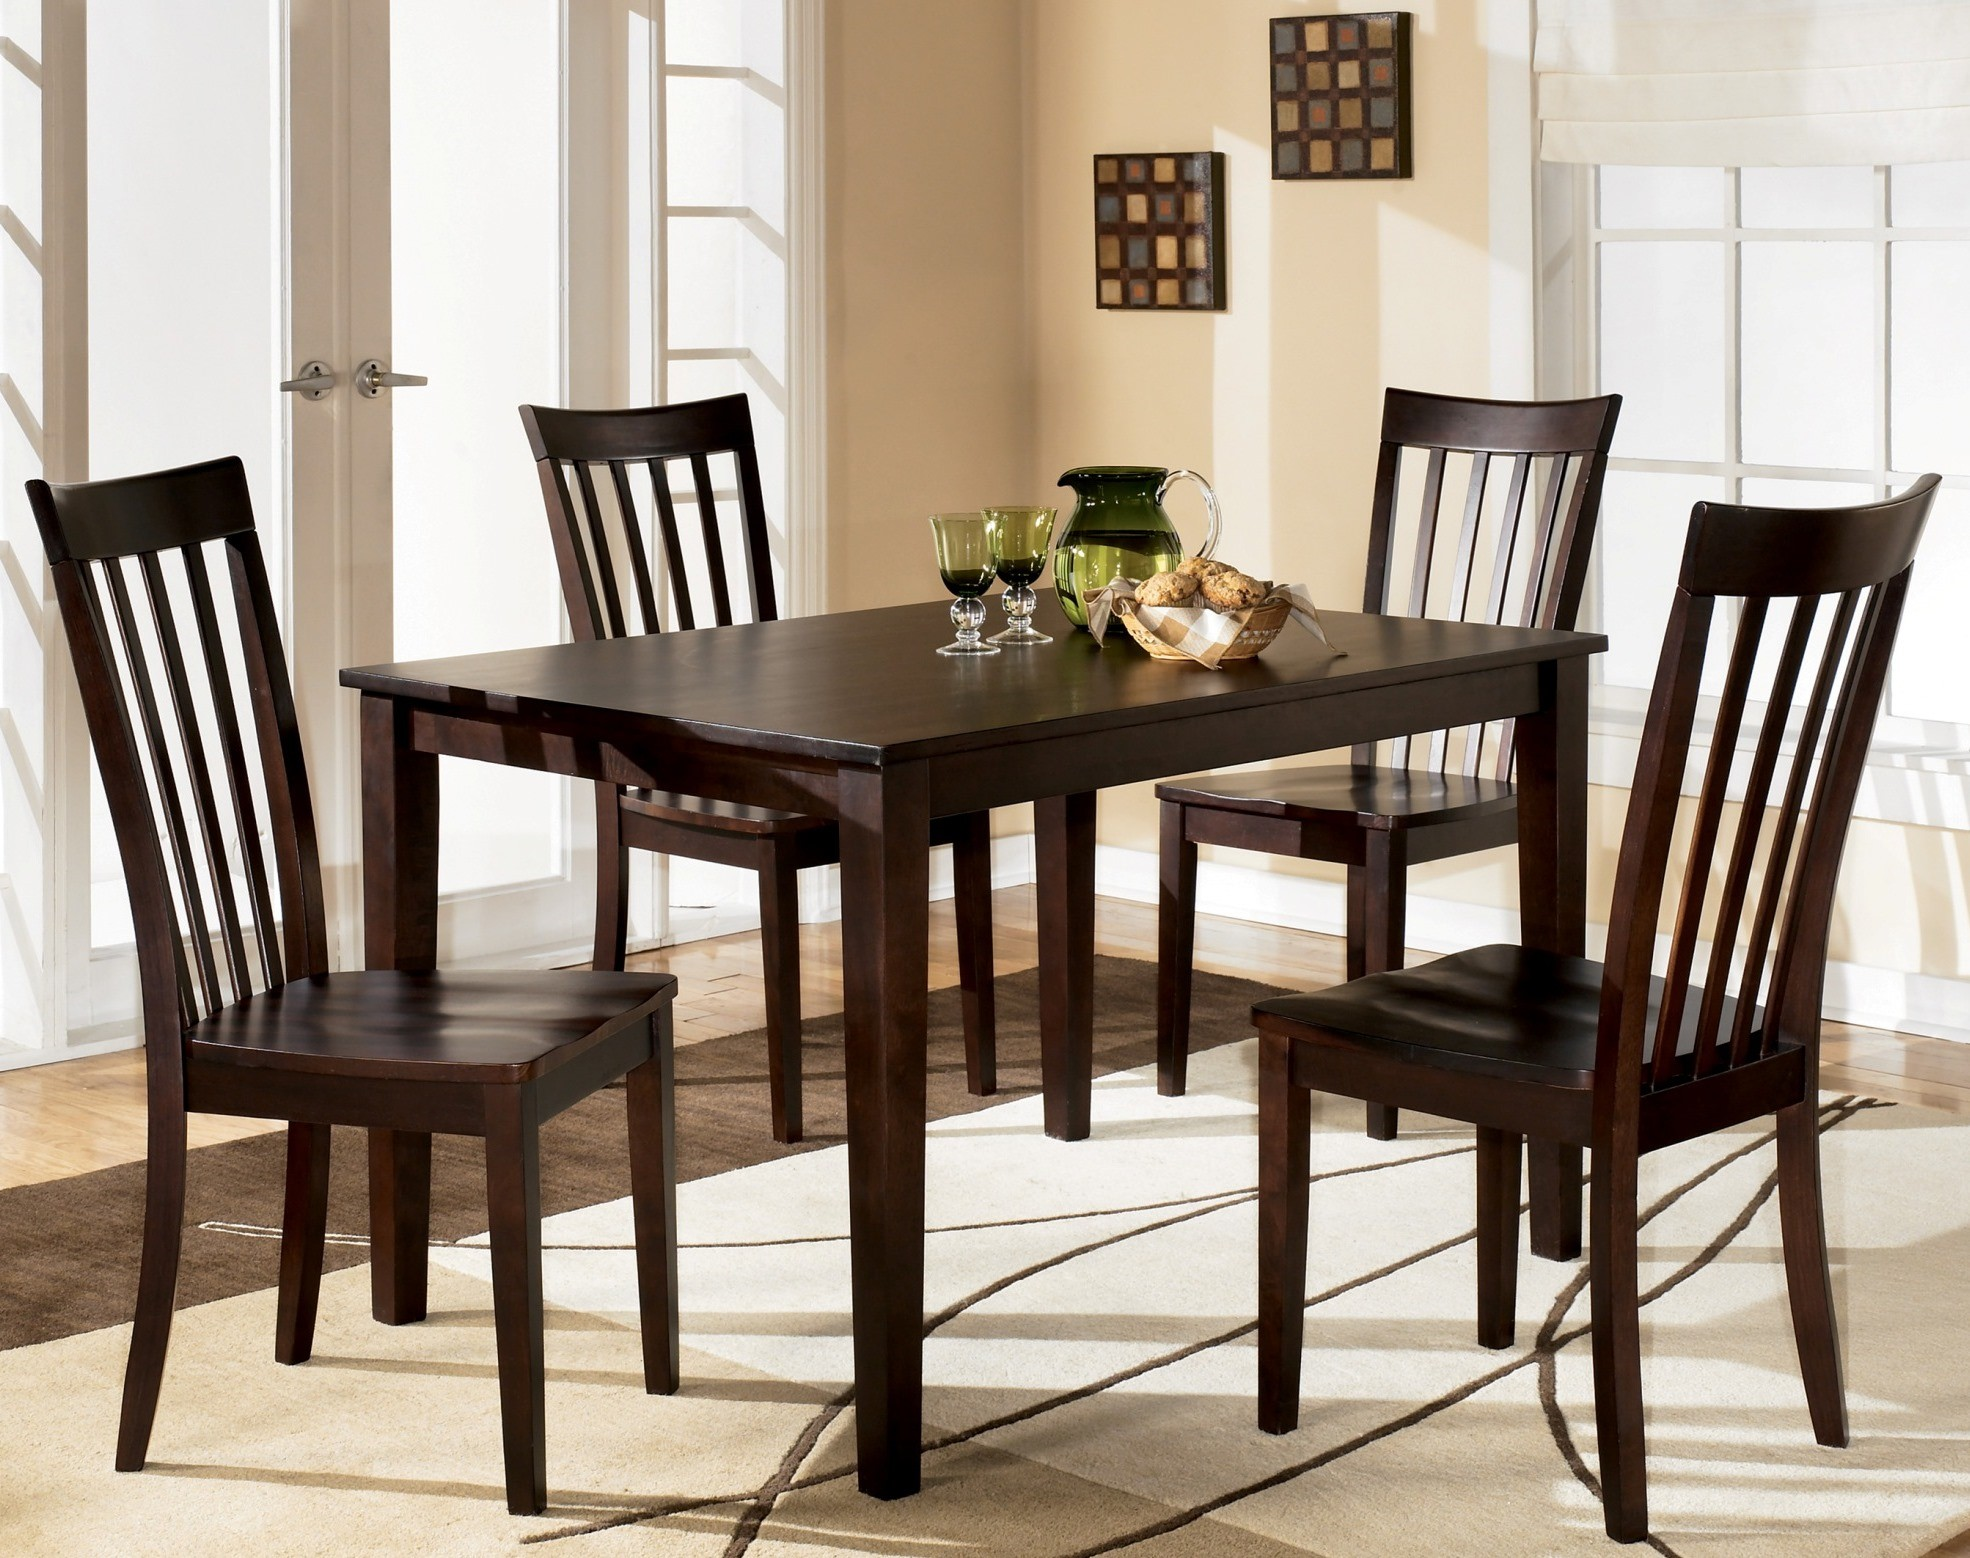 Hyland 5 Pcs Casual Dining Set From Ashley D258 225 Coleman Furniture